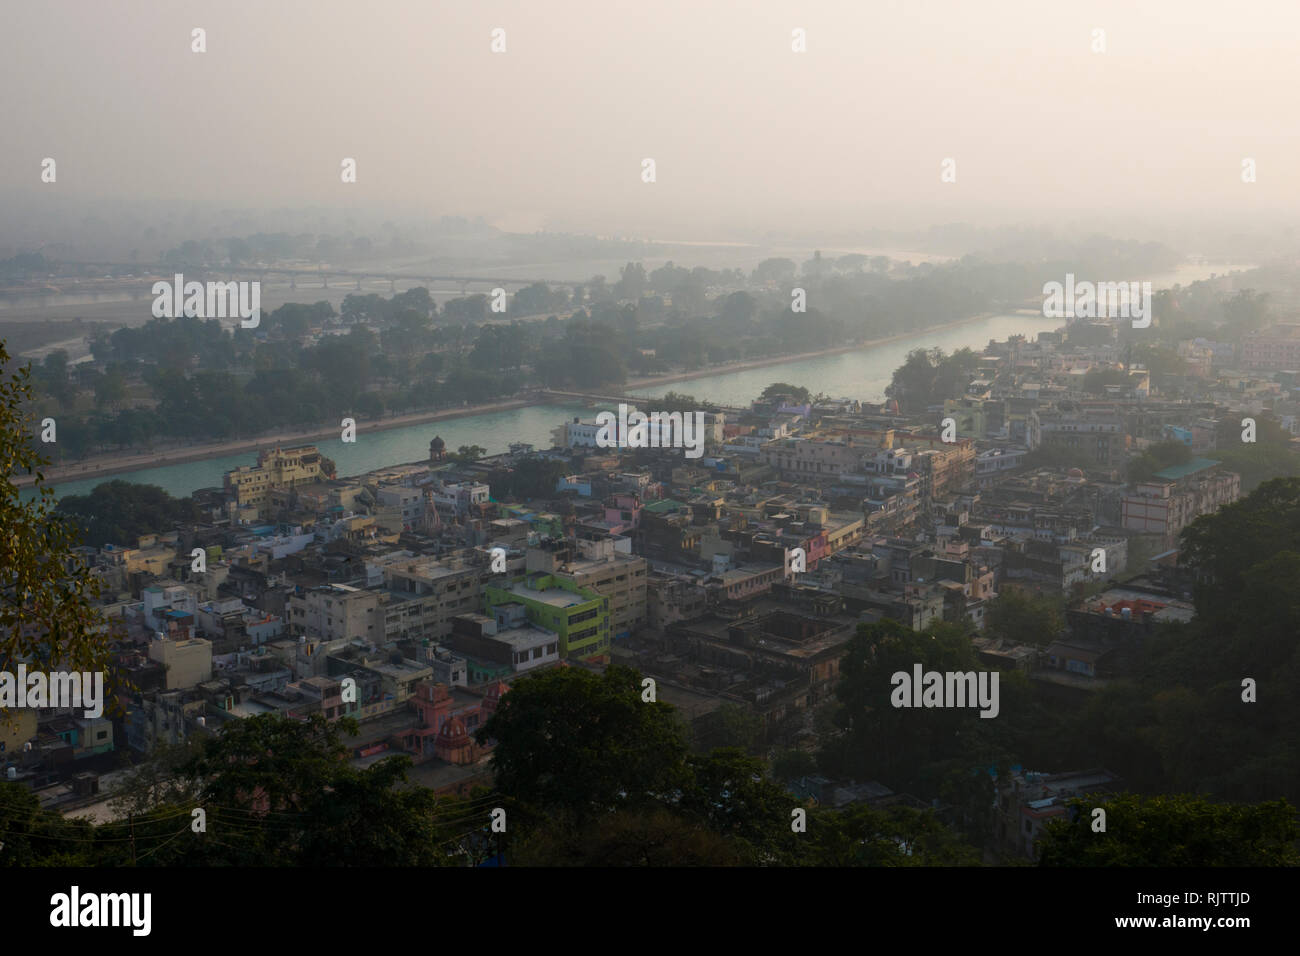 Air pollution over the Ganges River in Haridwar, India - Stock Image